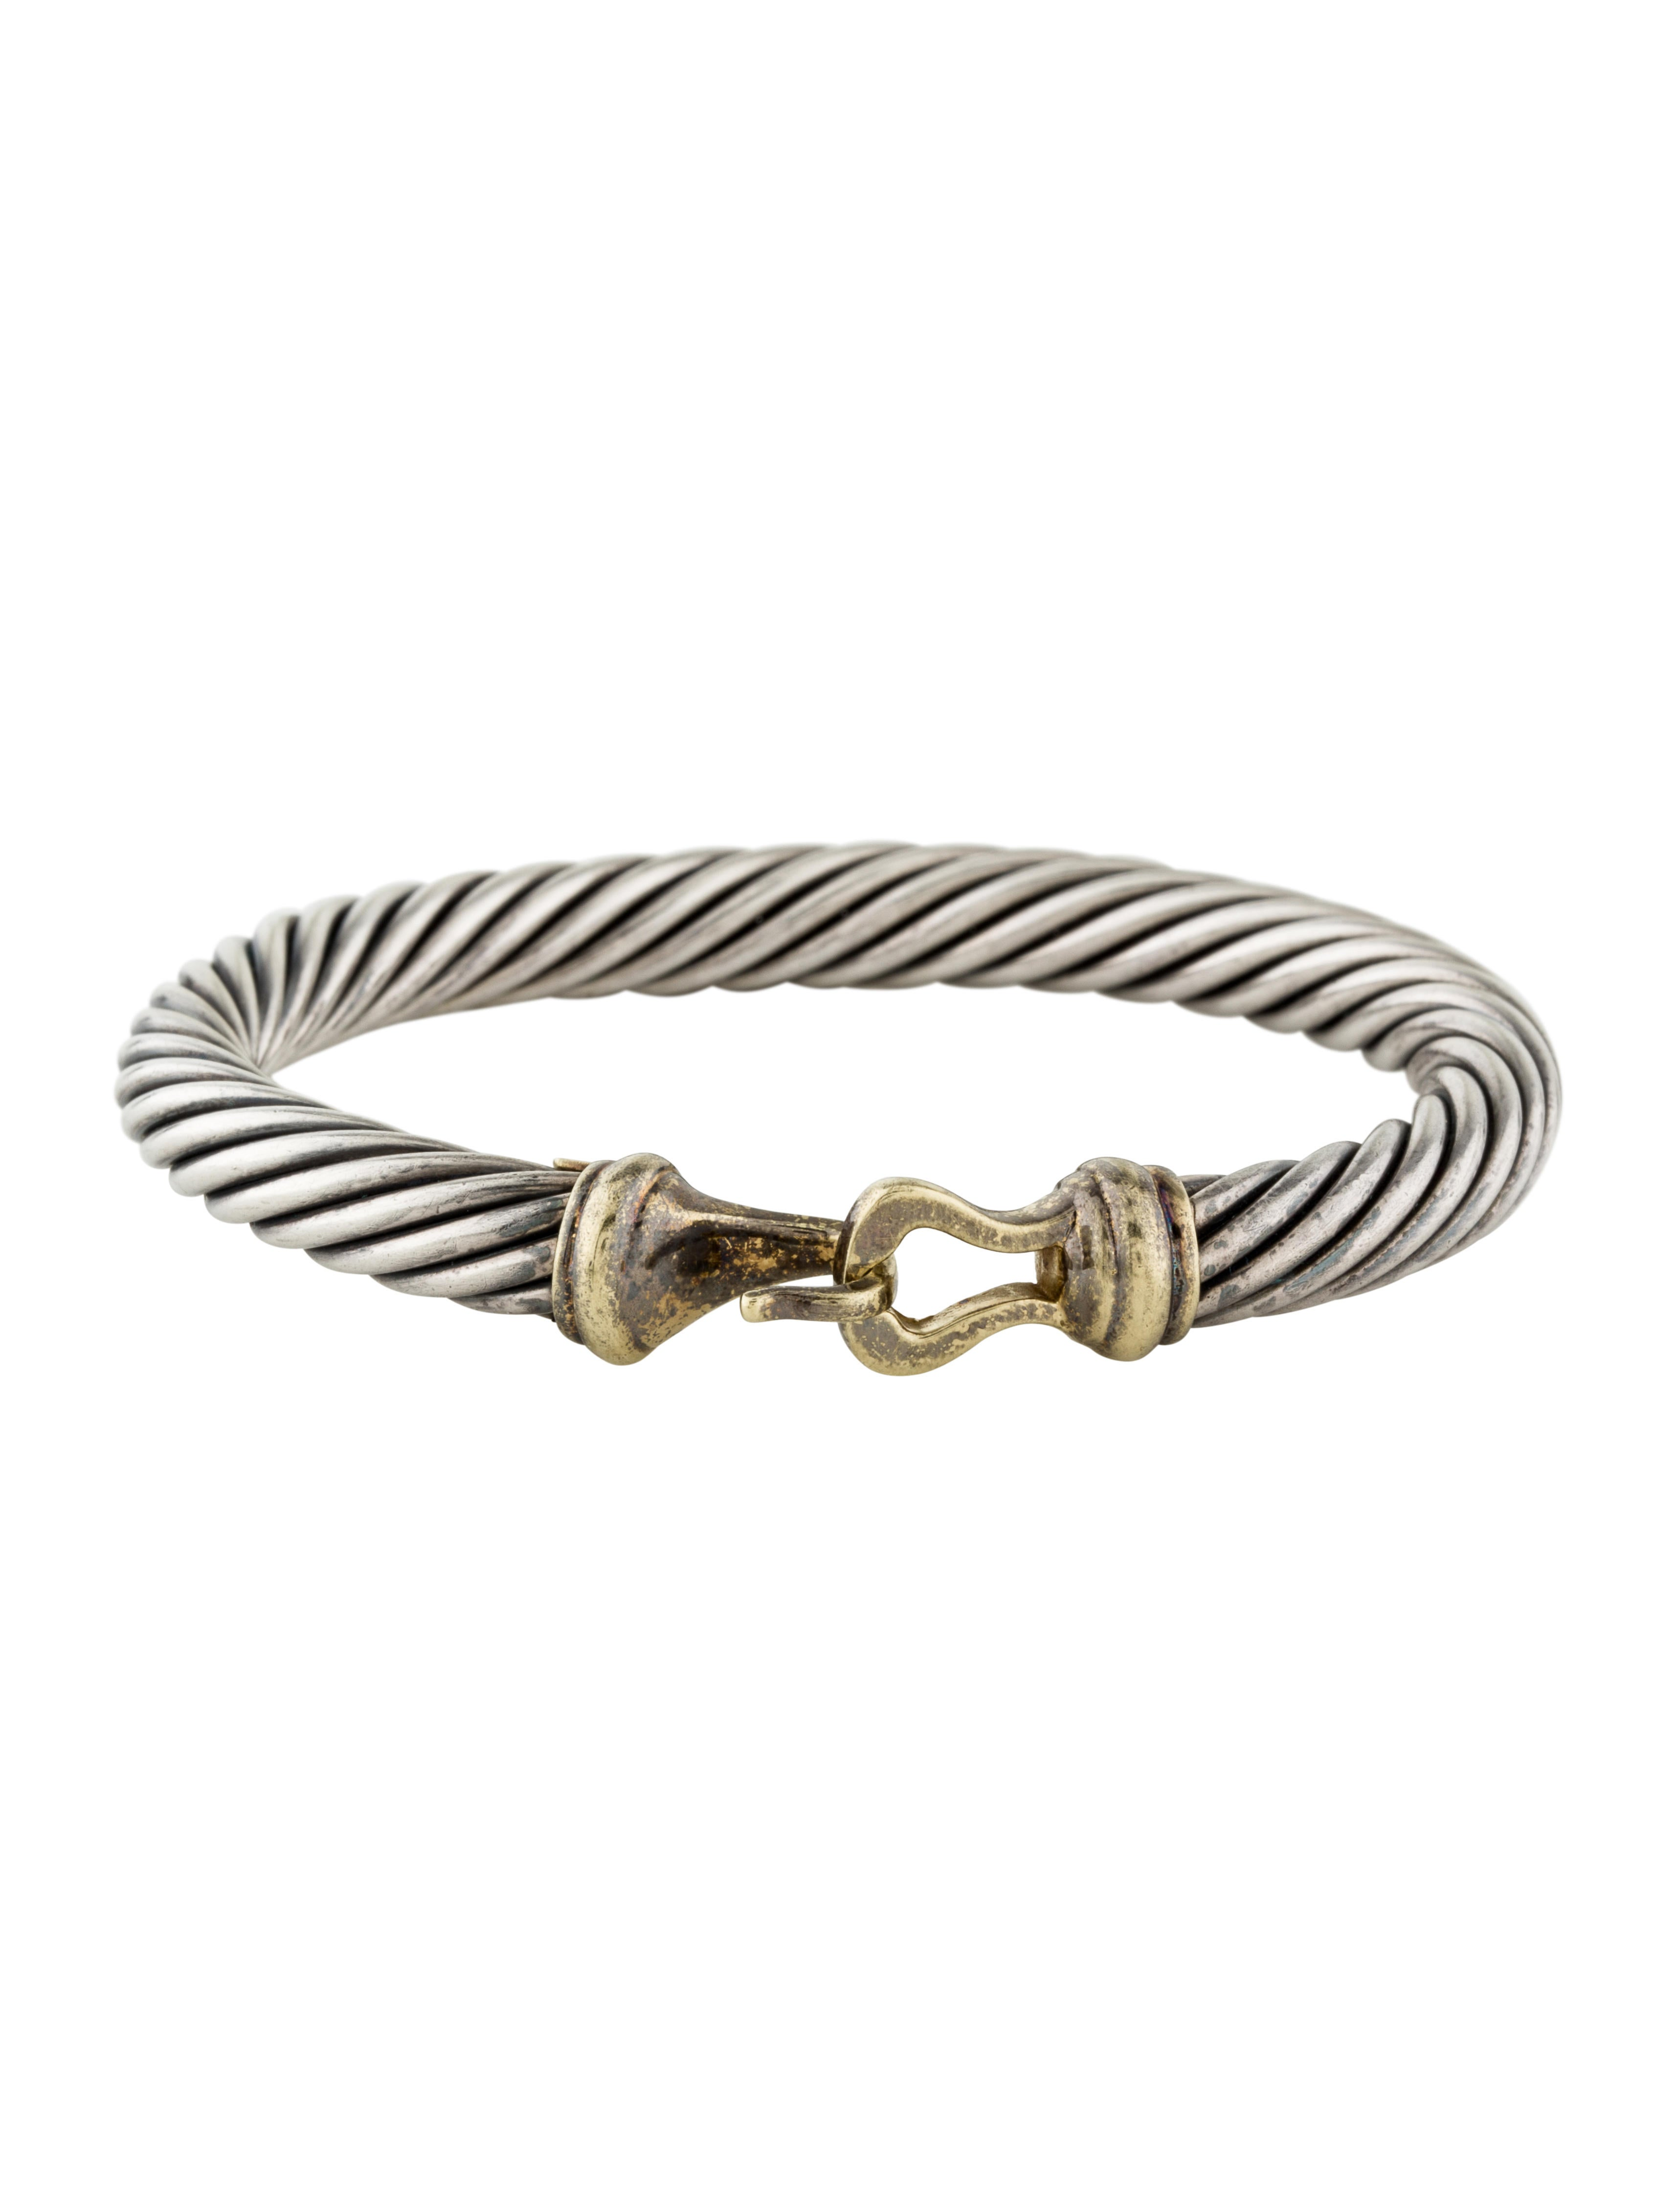 David yurman cable buckle bracelet bracelets dvy33352 for David yurman inspired bracelet cable